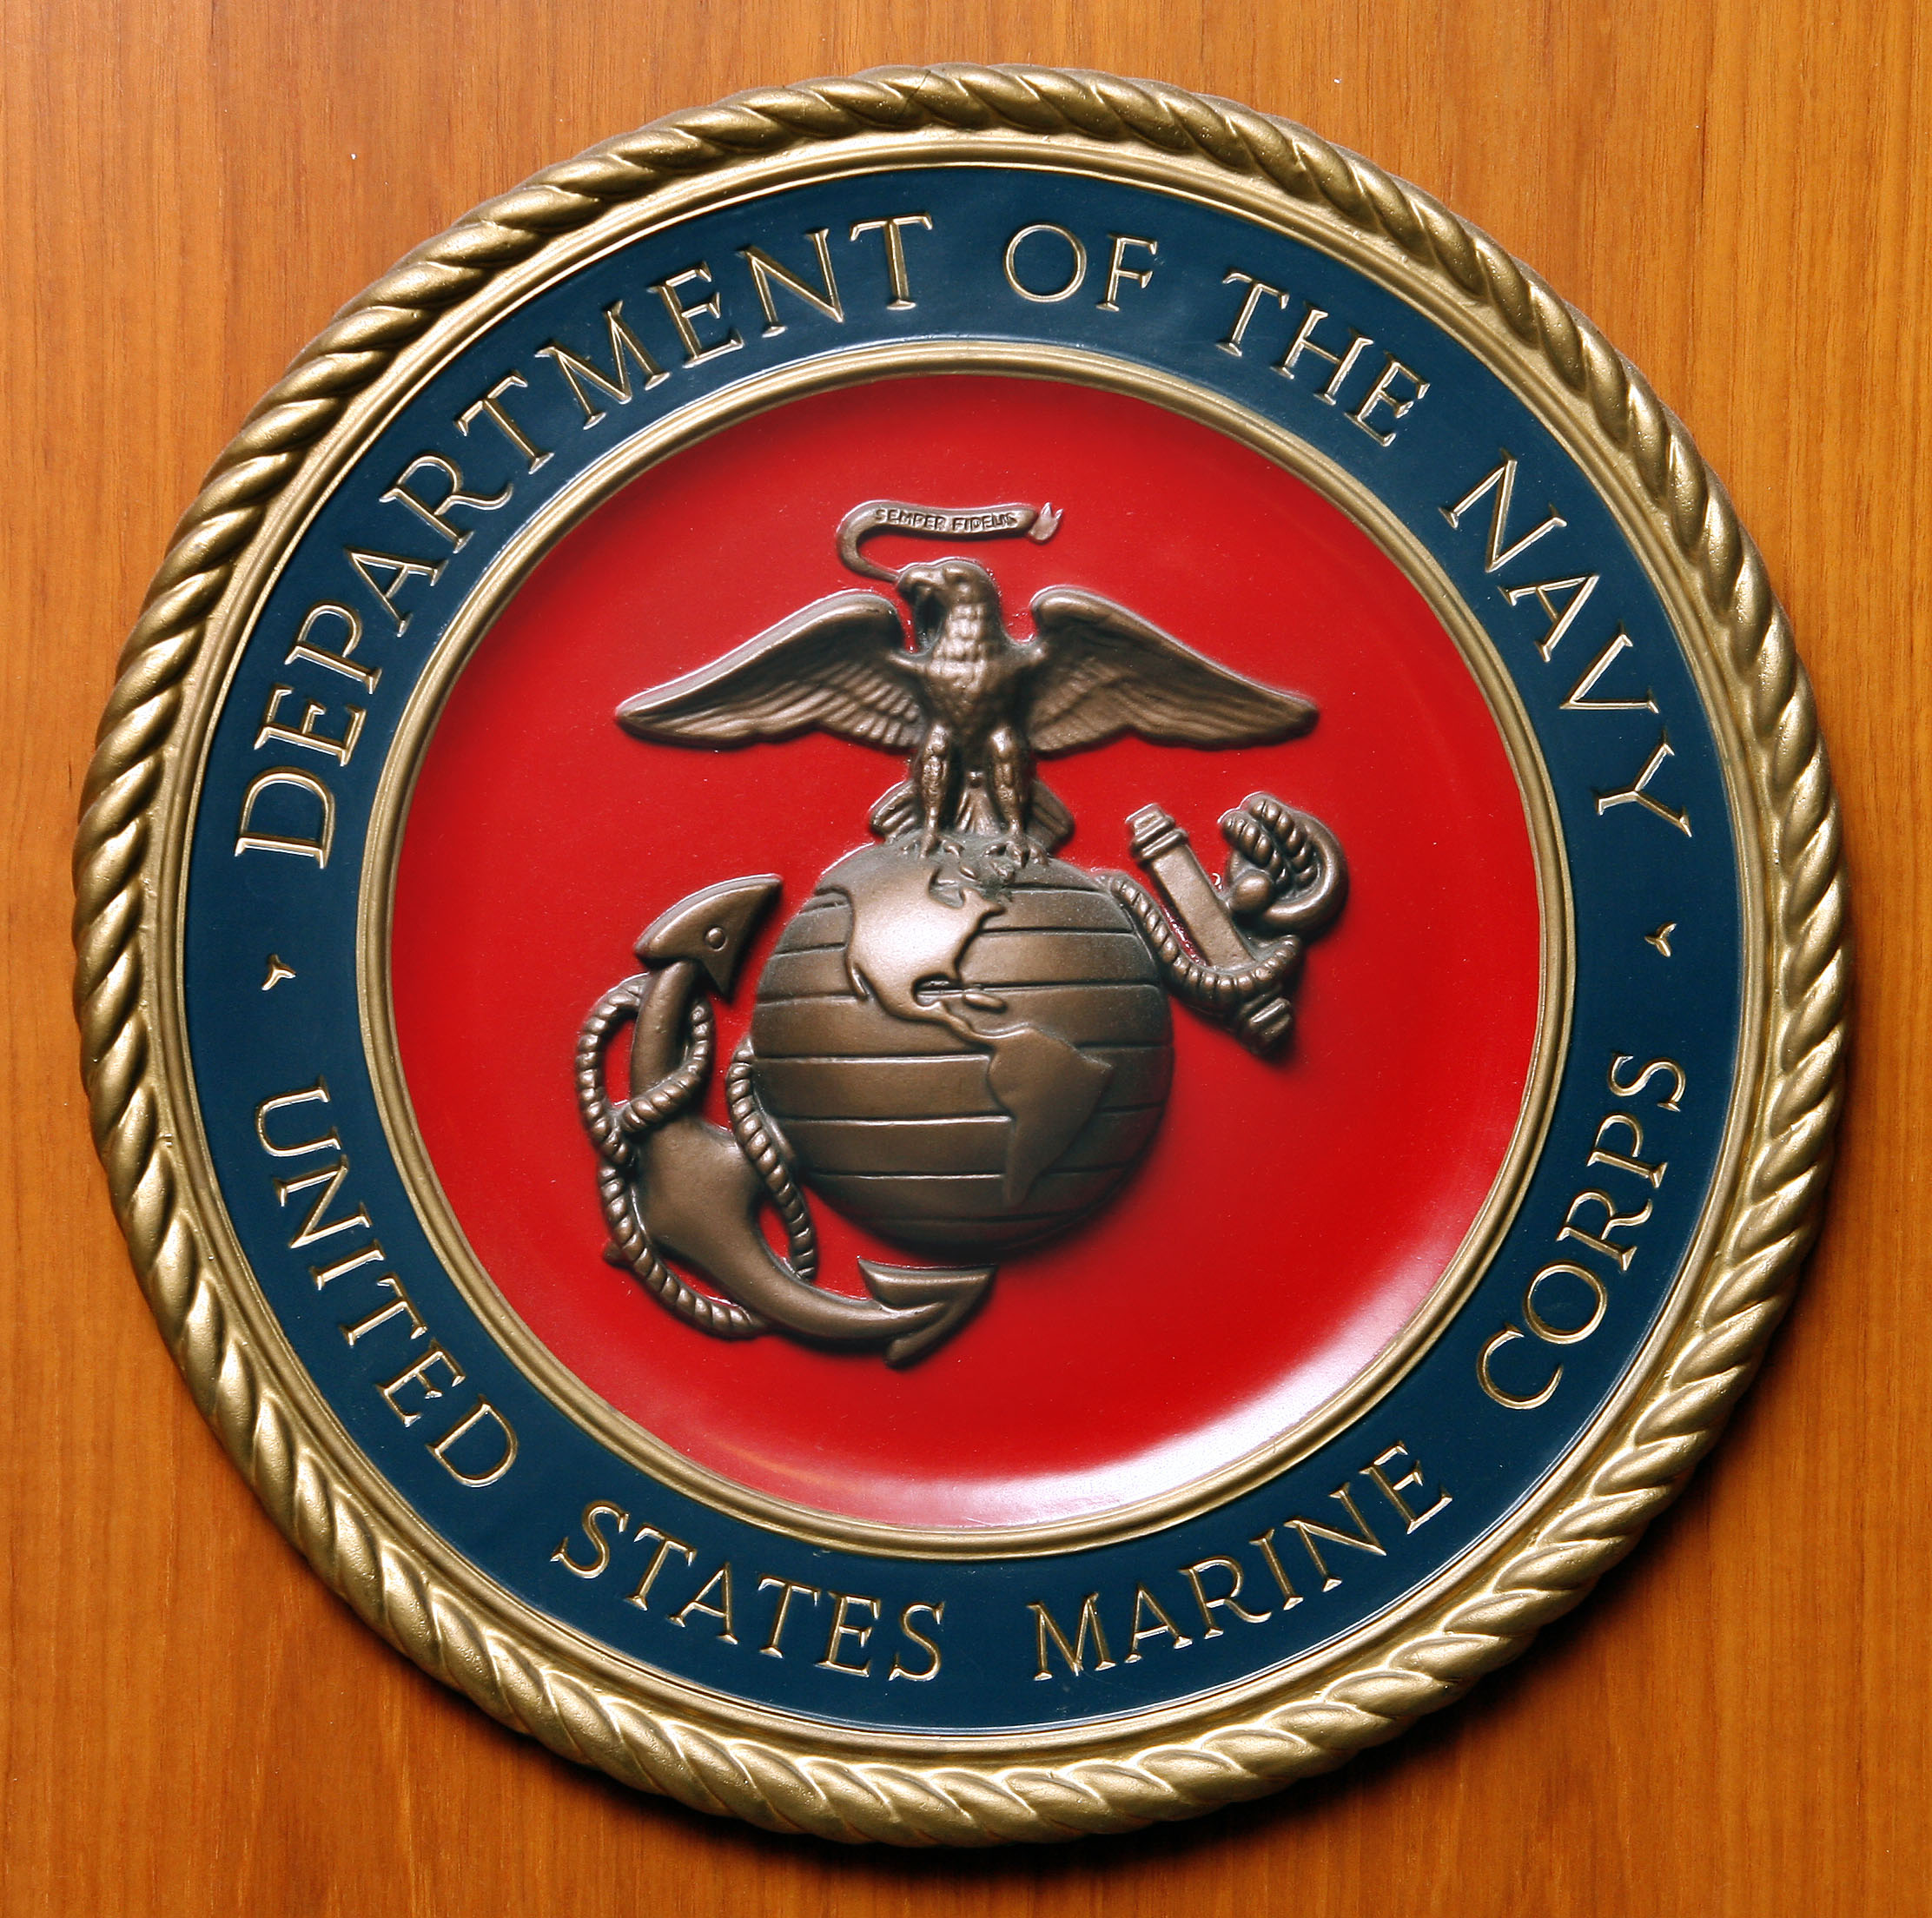 Marine involved in college student's death, military says